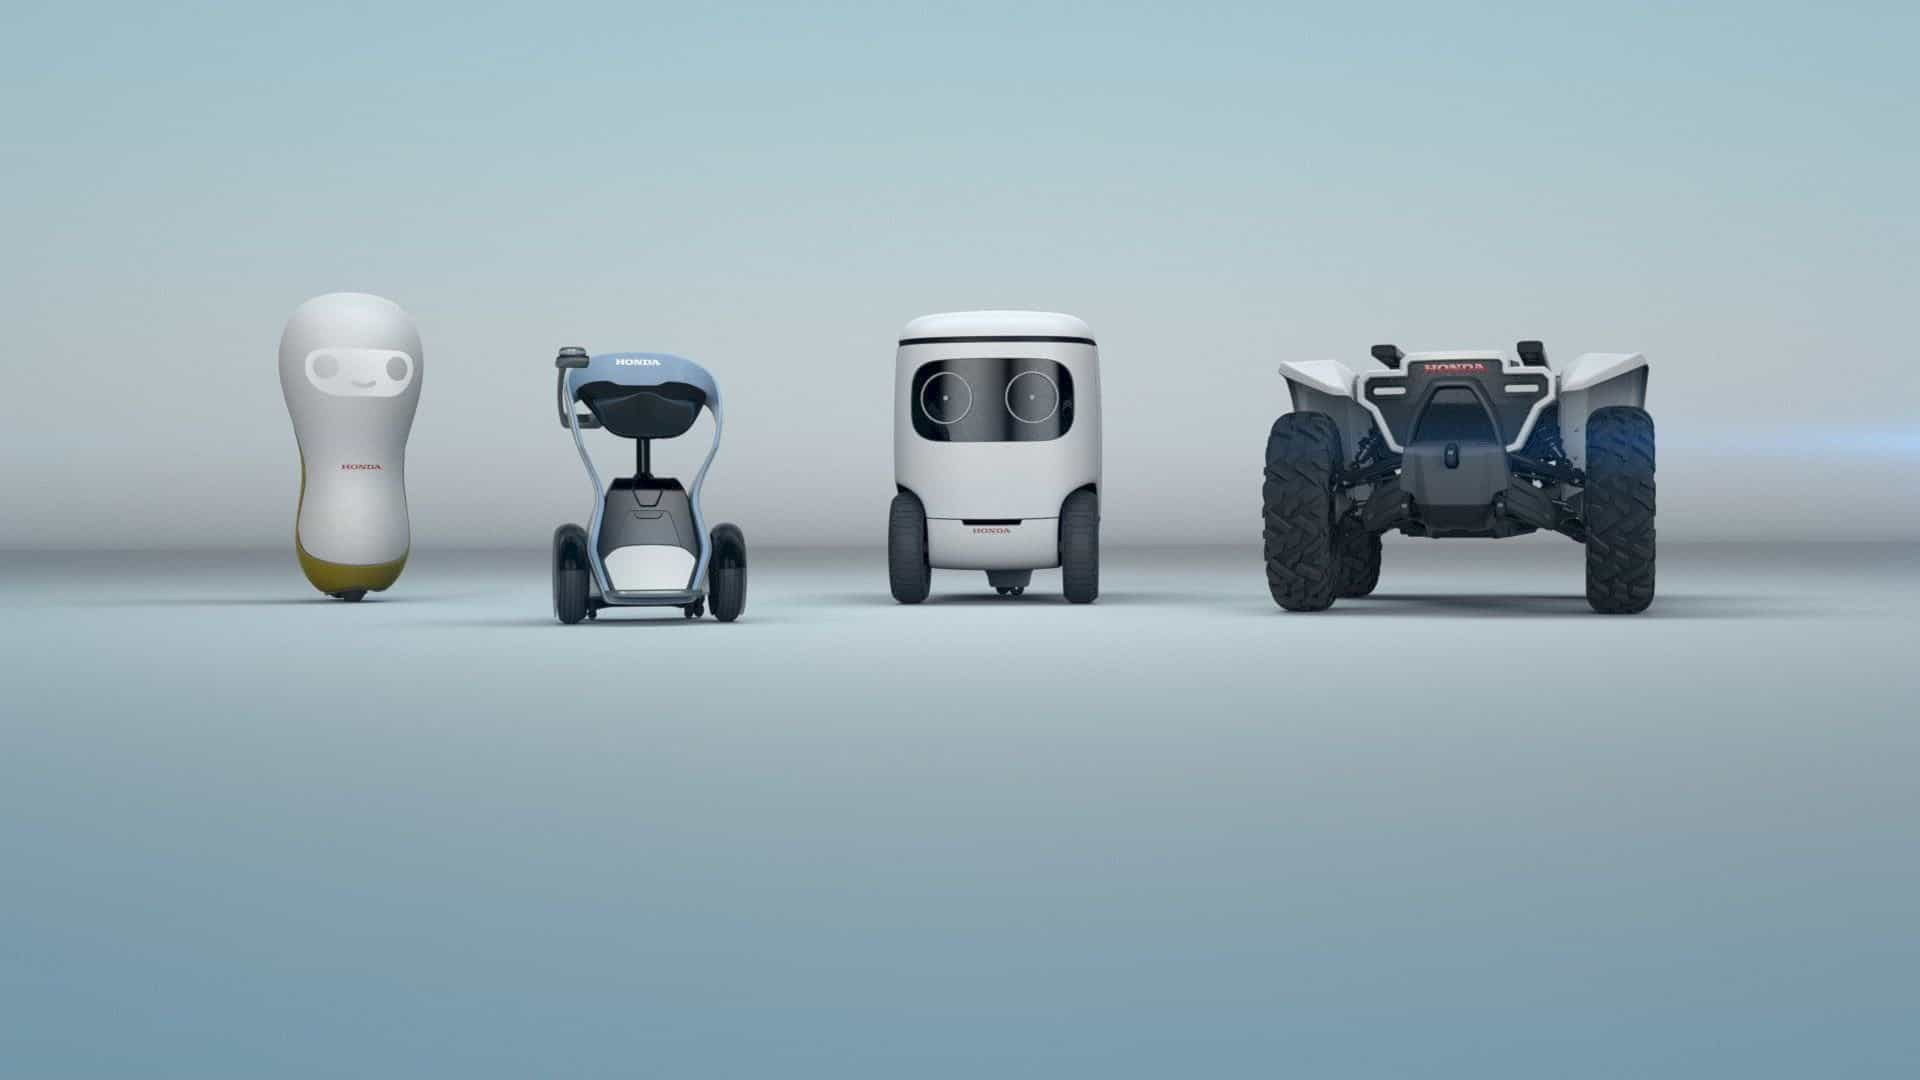 Honda 3E Robotic Concept: The Ultimate Solution in Any Situation